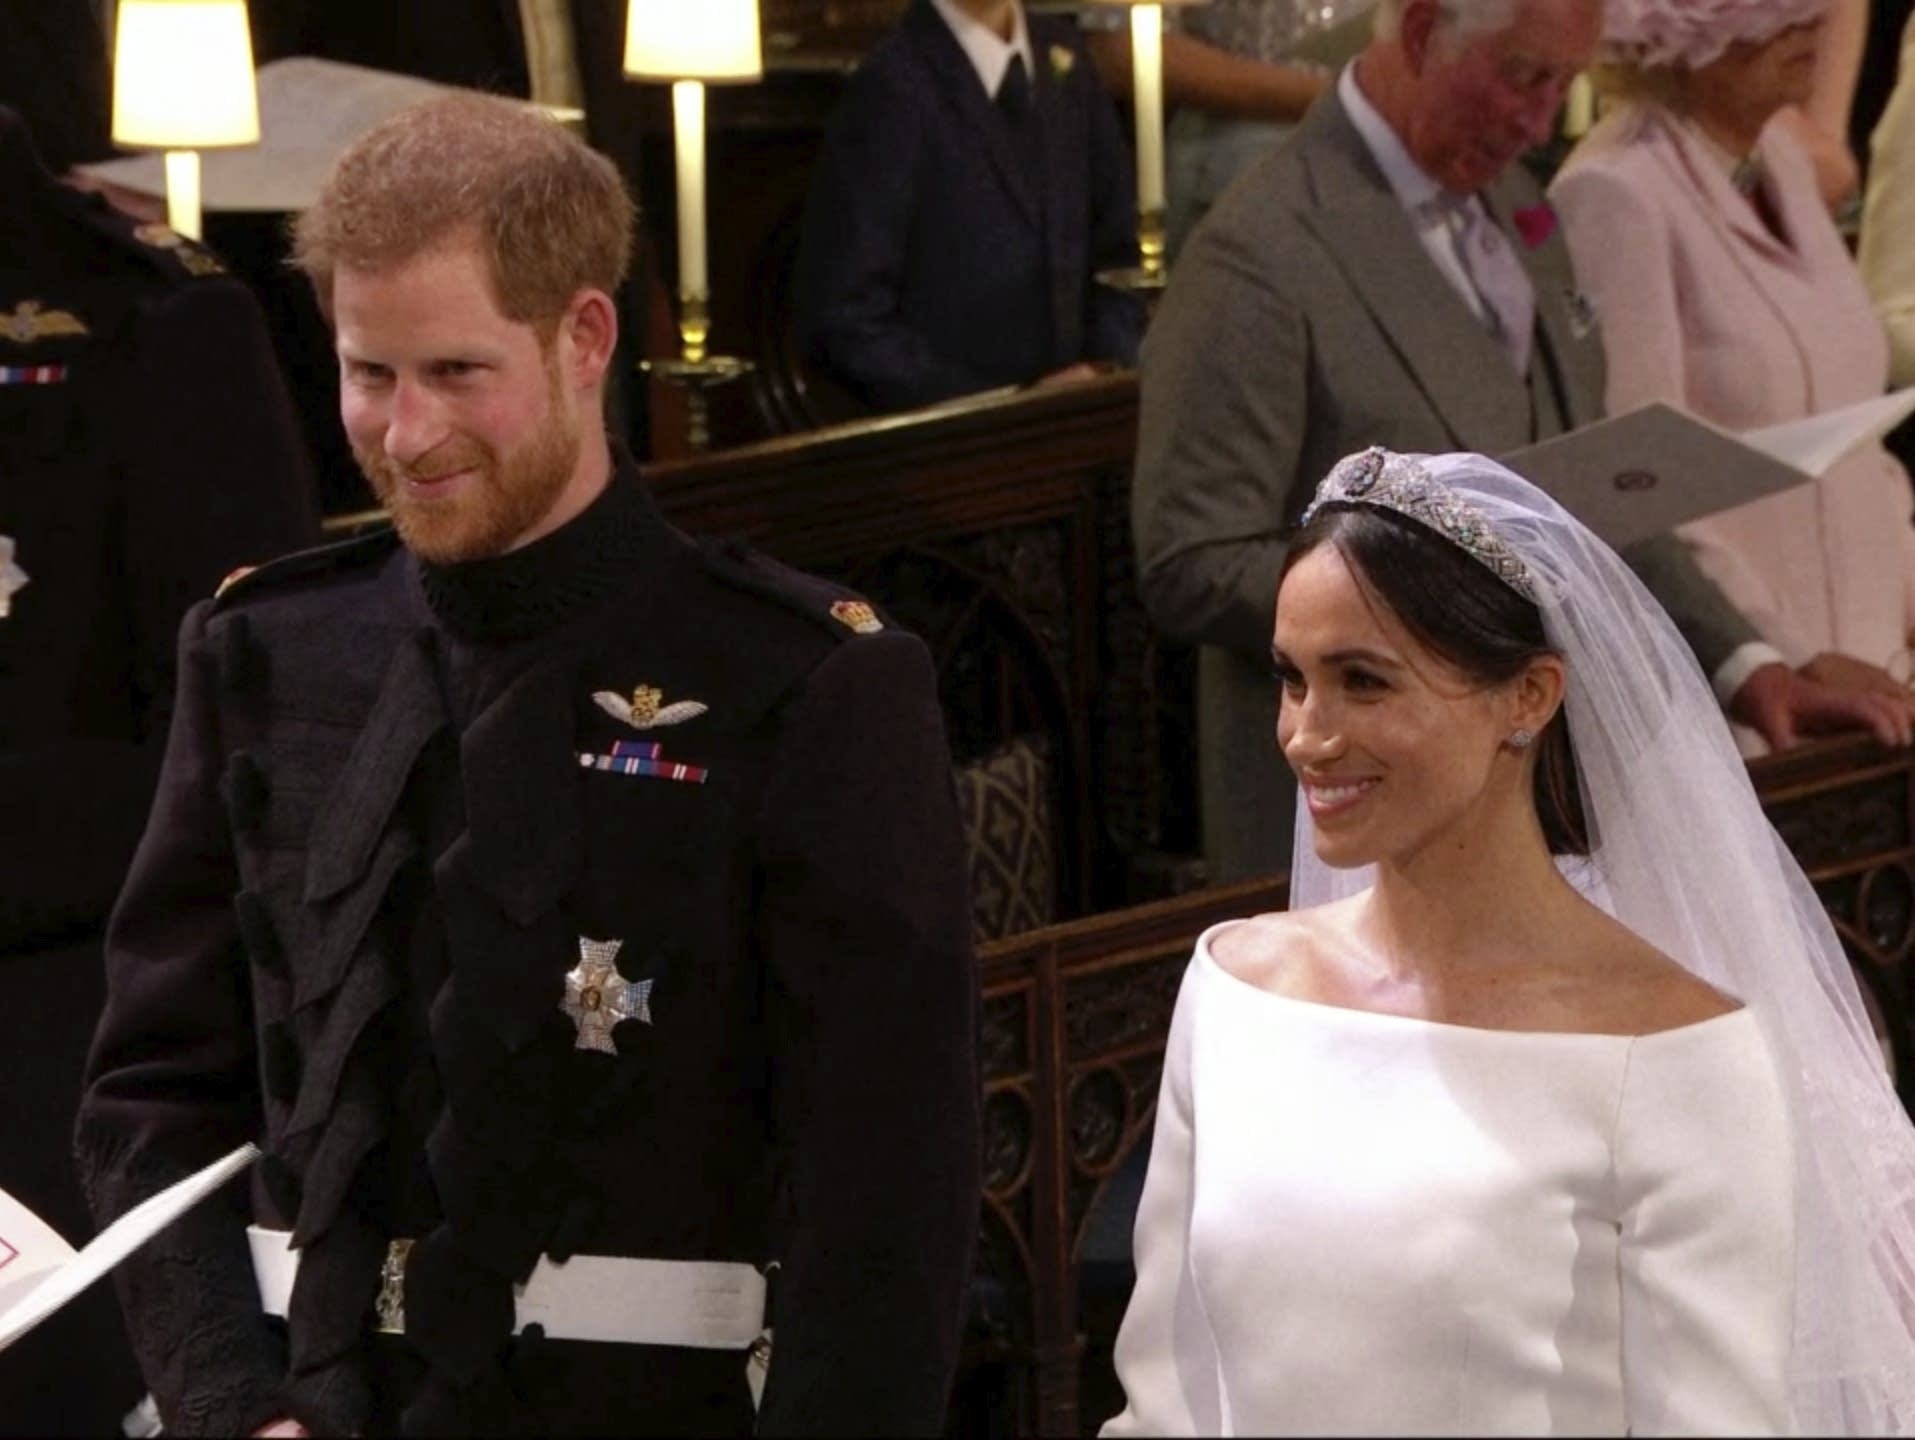 Royal Wedding Harry And Meghan.Watch Live Royal Wedding Of Prince Harry And Meghan Markle Mpr News